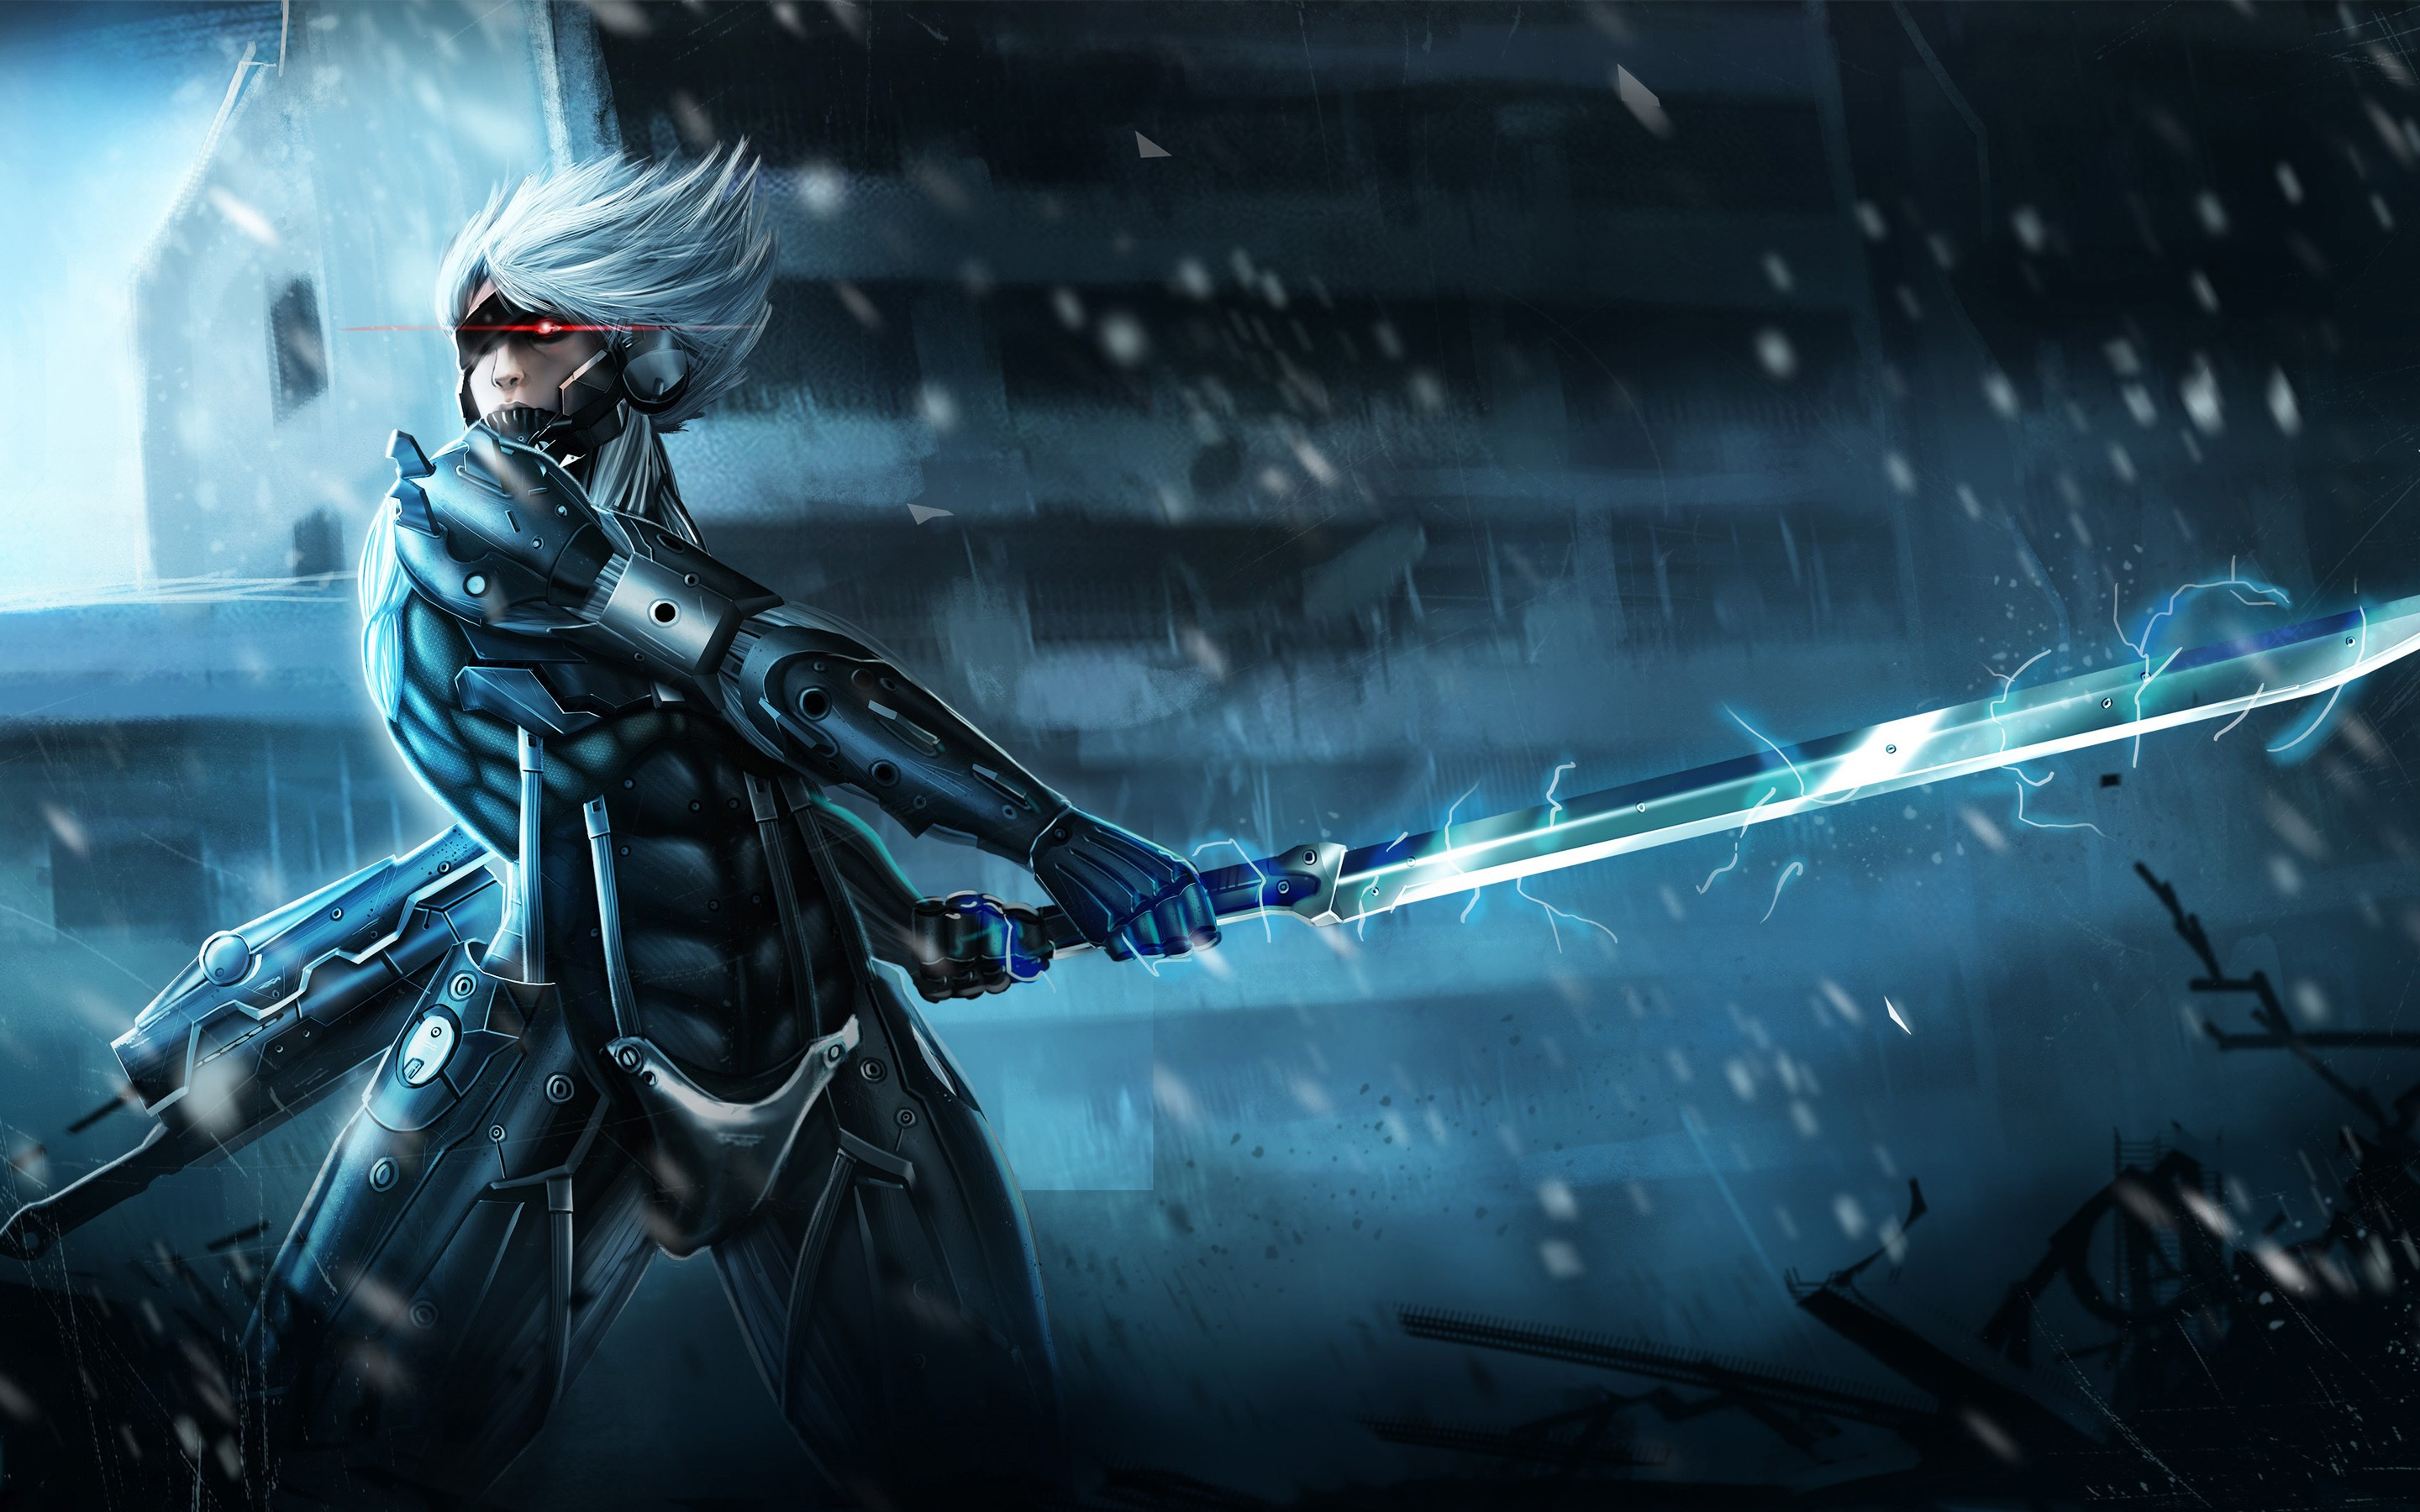 2560x1440 metal gear rising raiden 1440p resolution hd 4k wallpapers